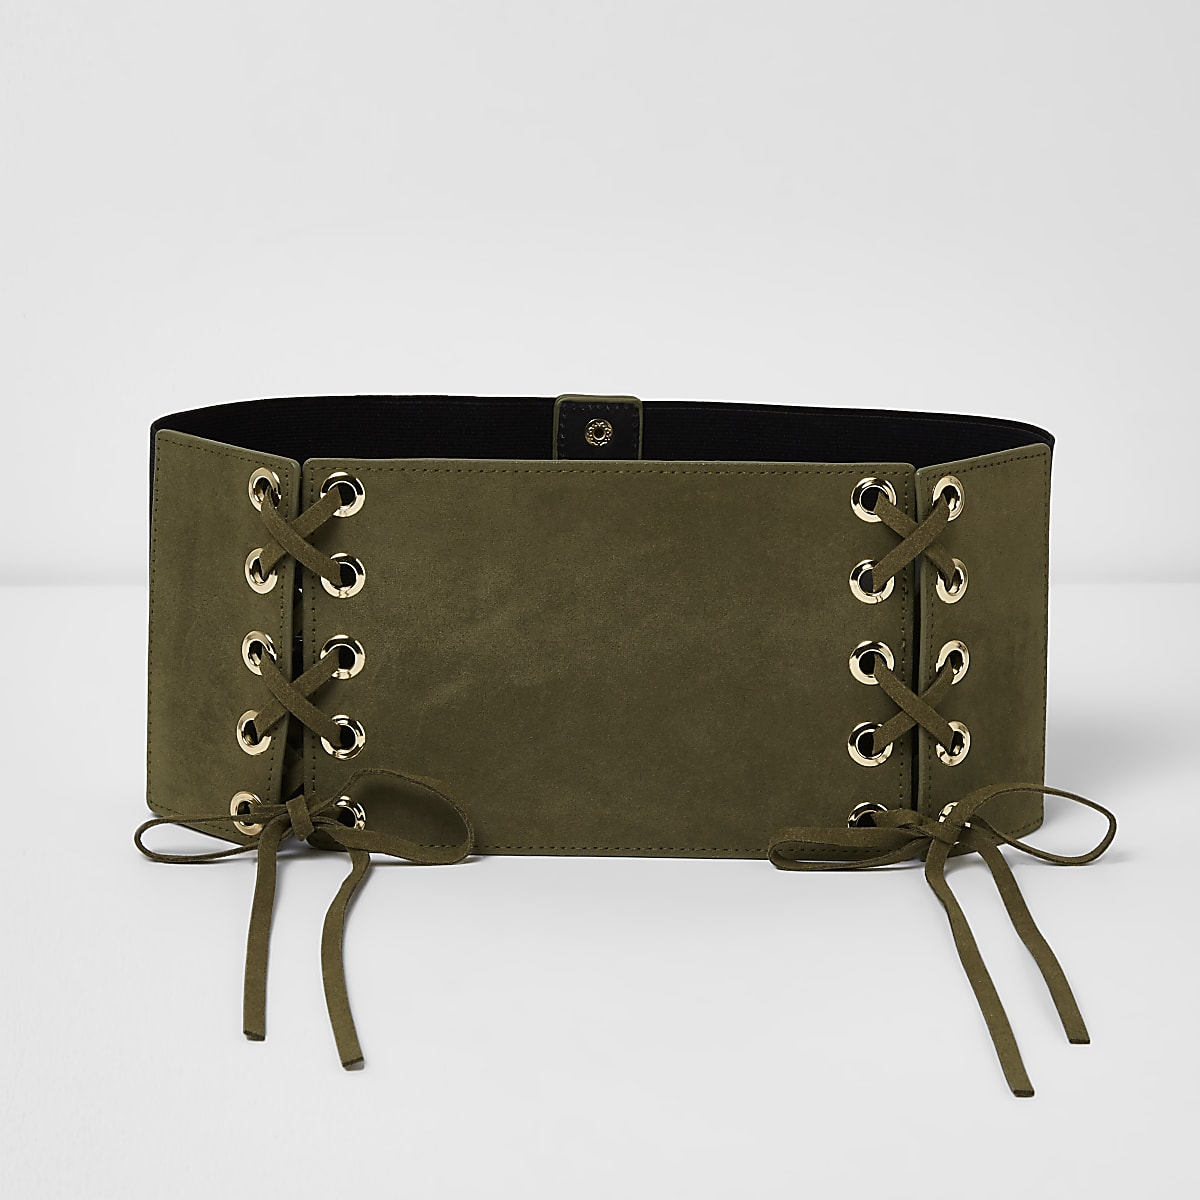 Khaki green wide double lace-up belt